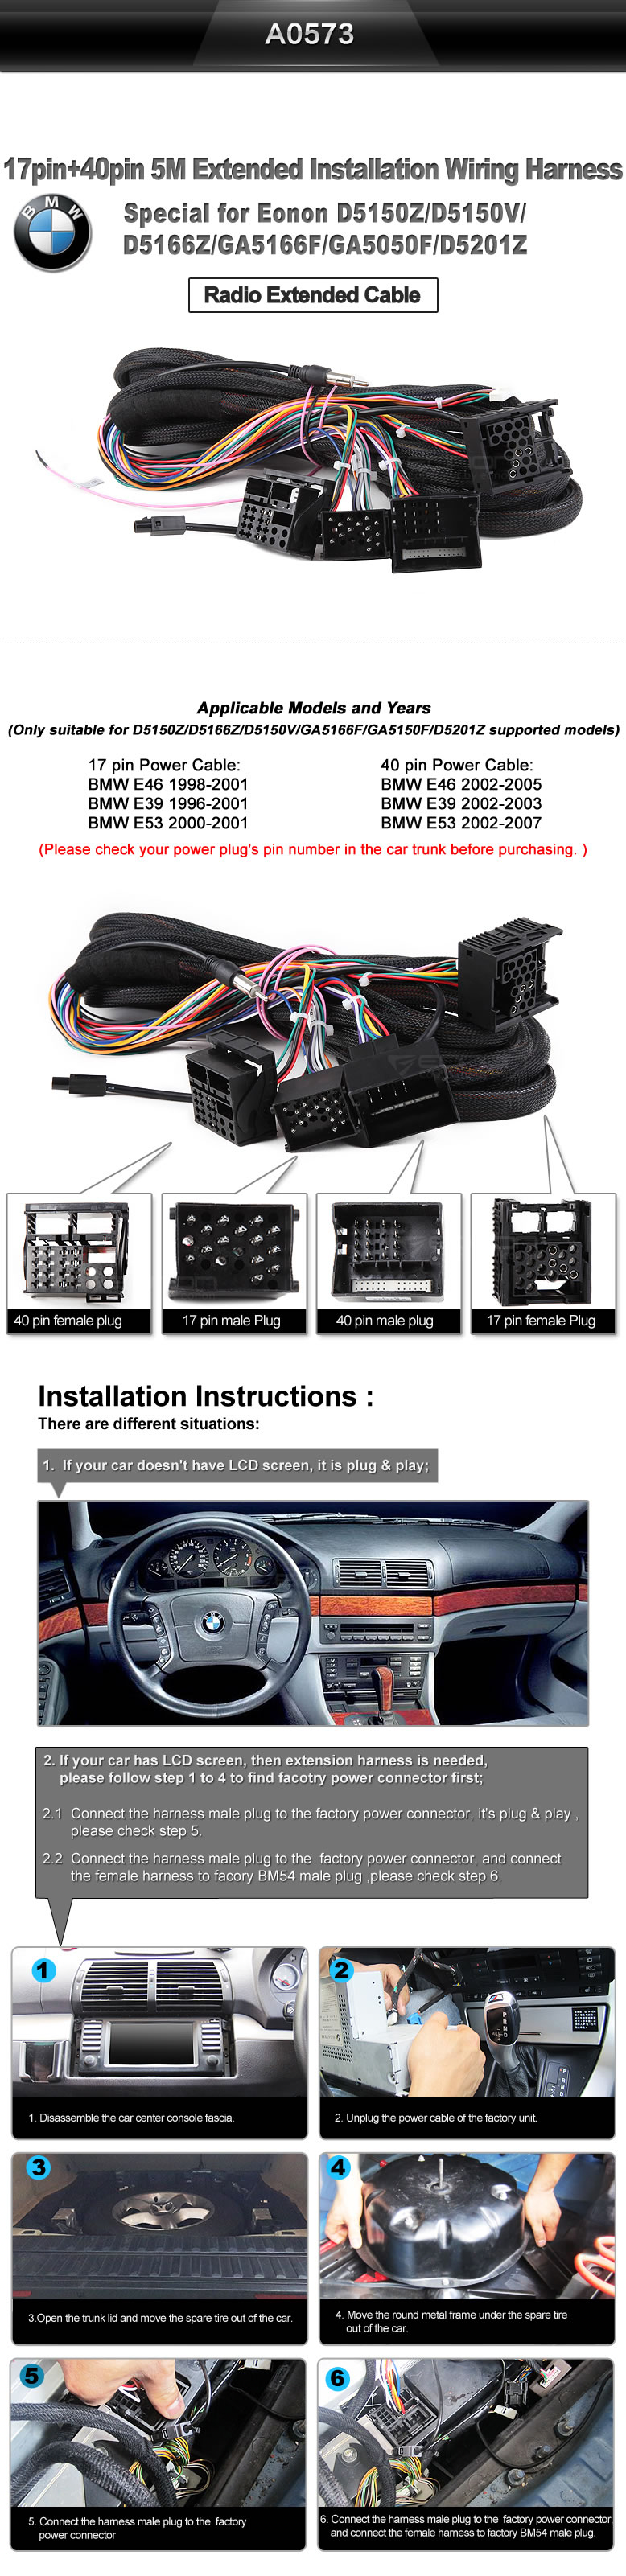 Eonon A0573 Specific Bmw Installation Wiring Harness Diagram Shipping